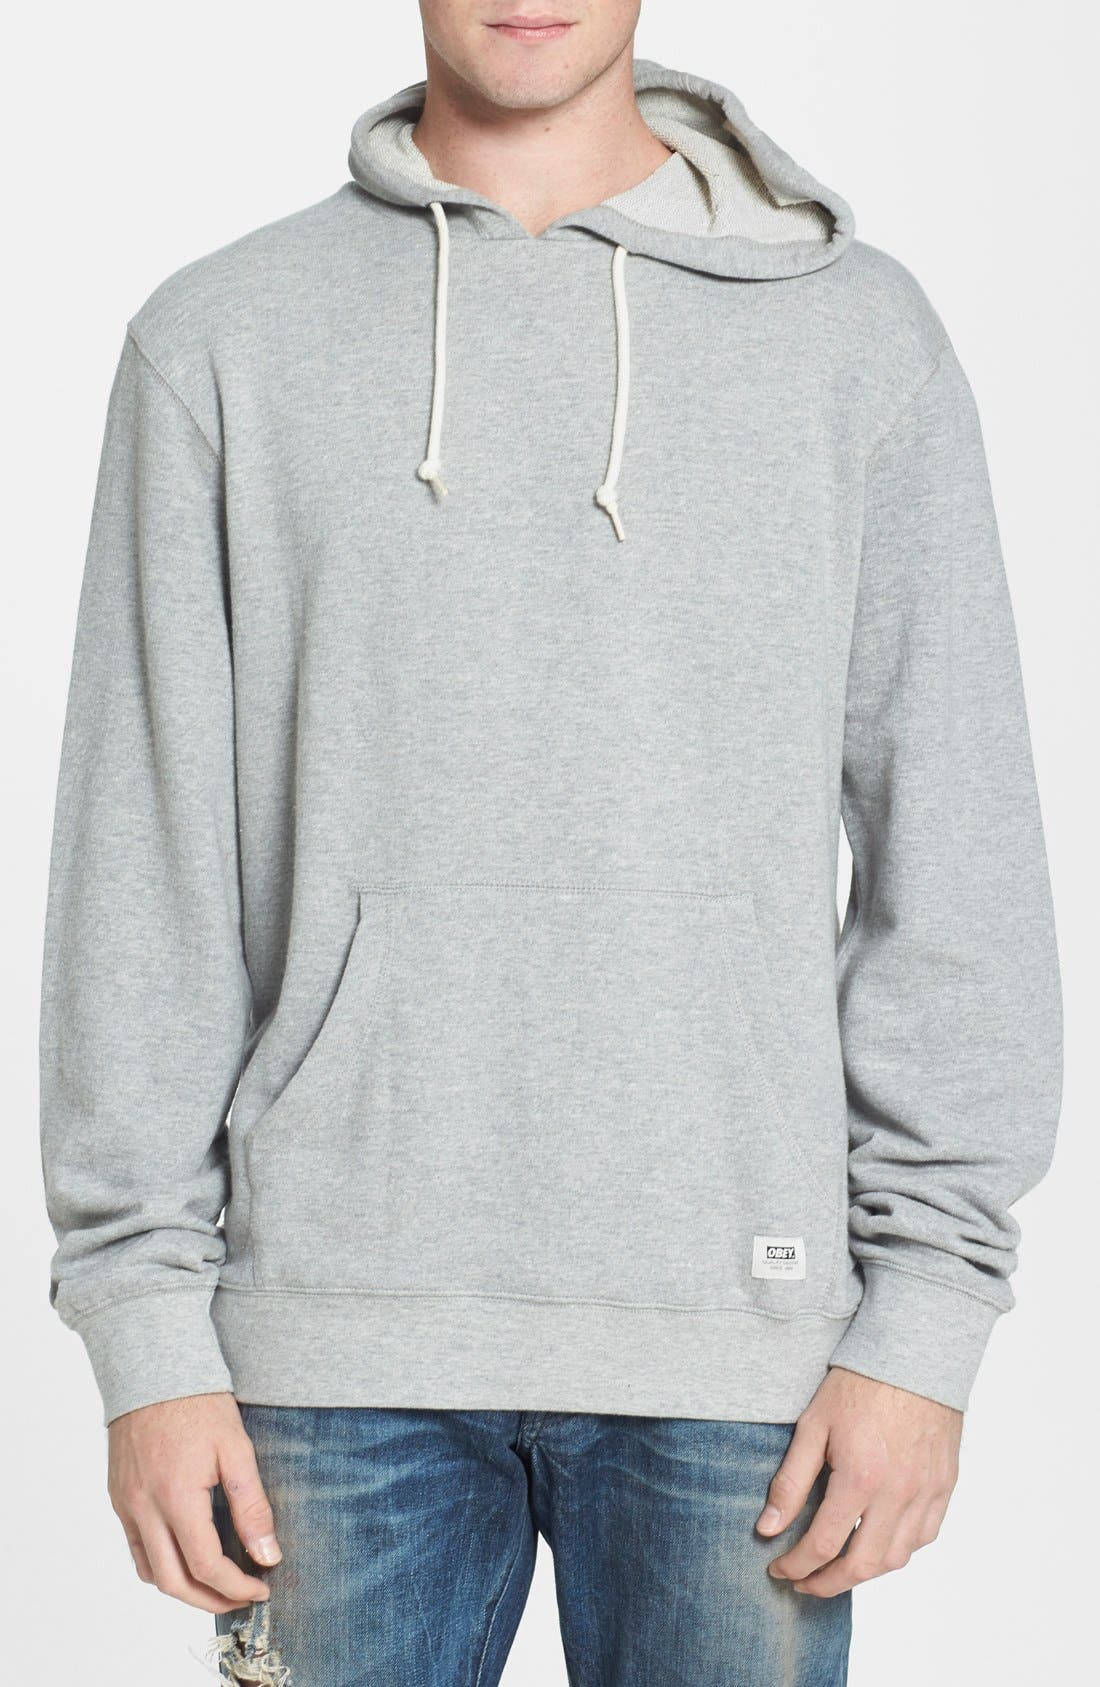 Main Image - Obey 'Dissent' Hoodie